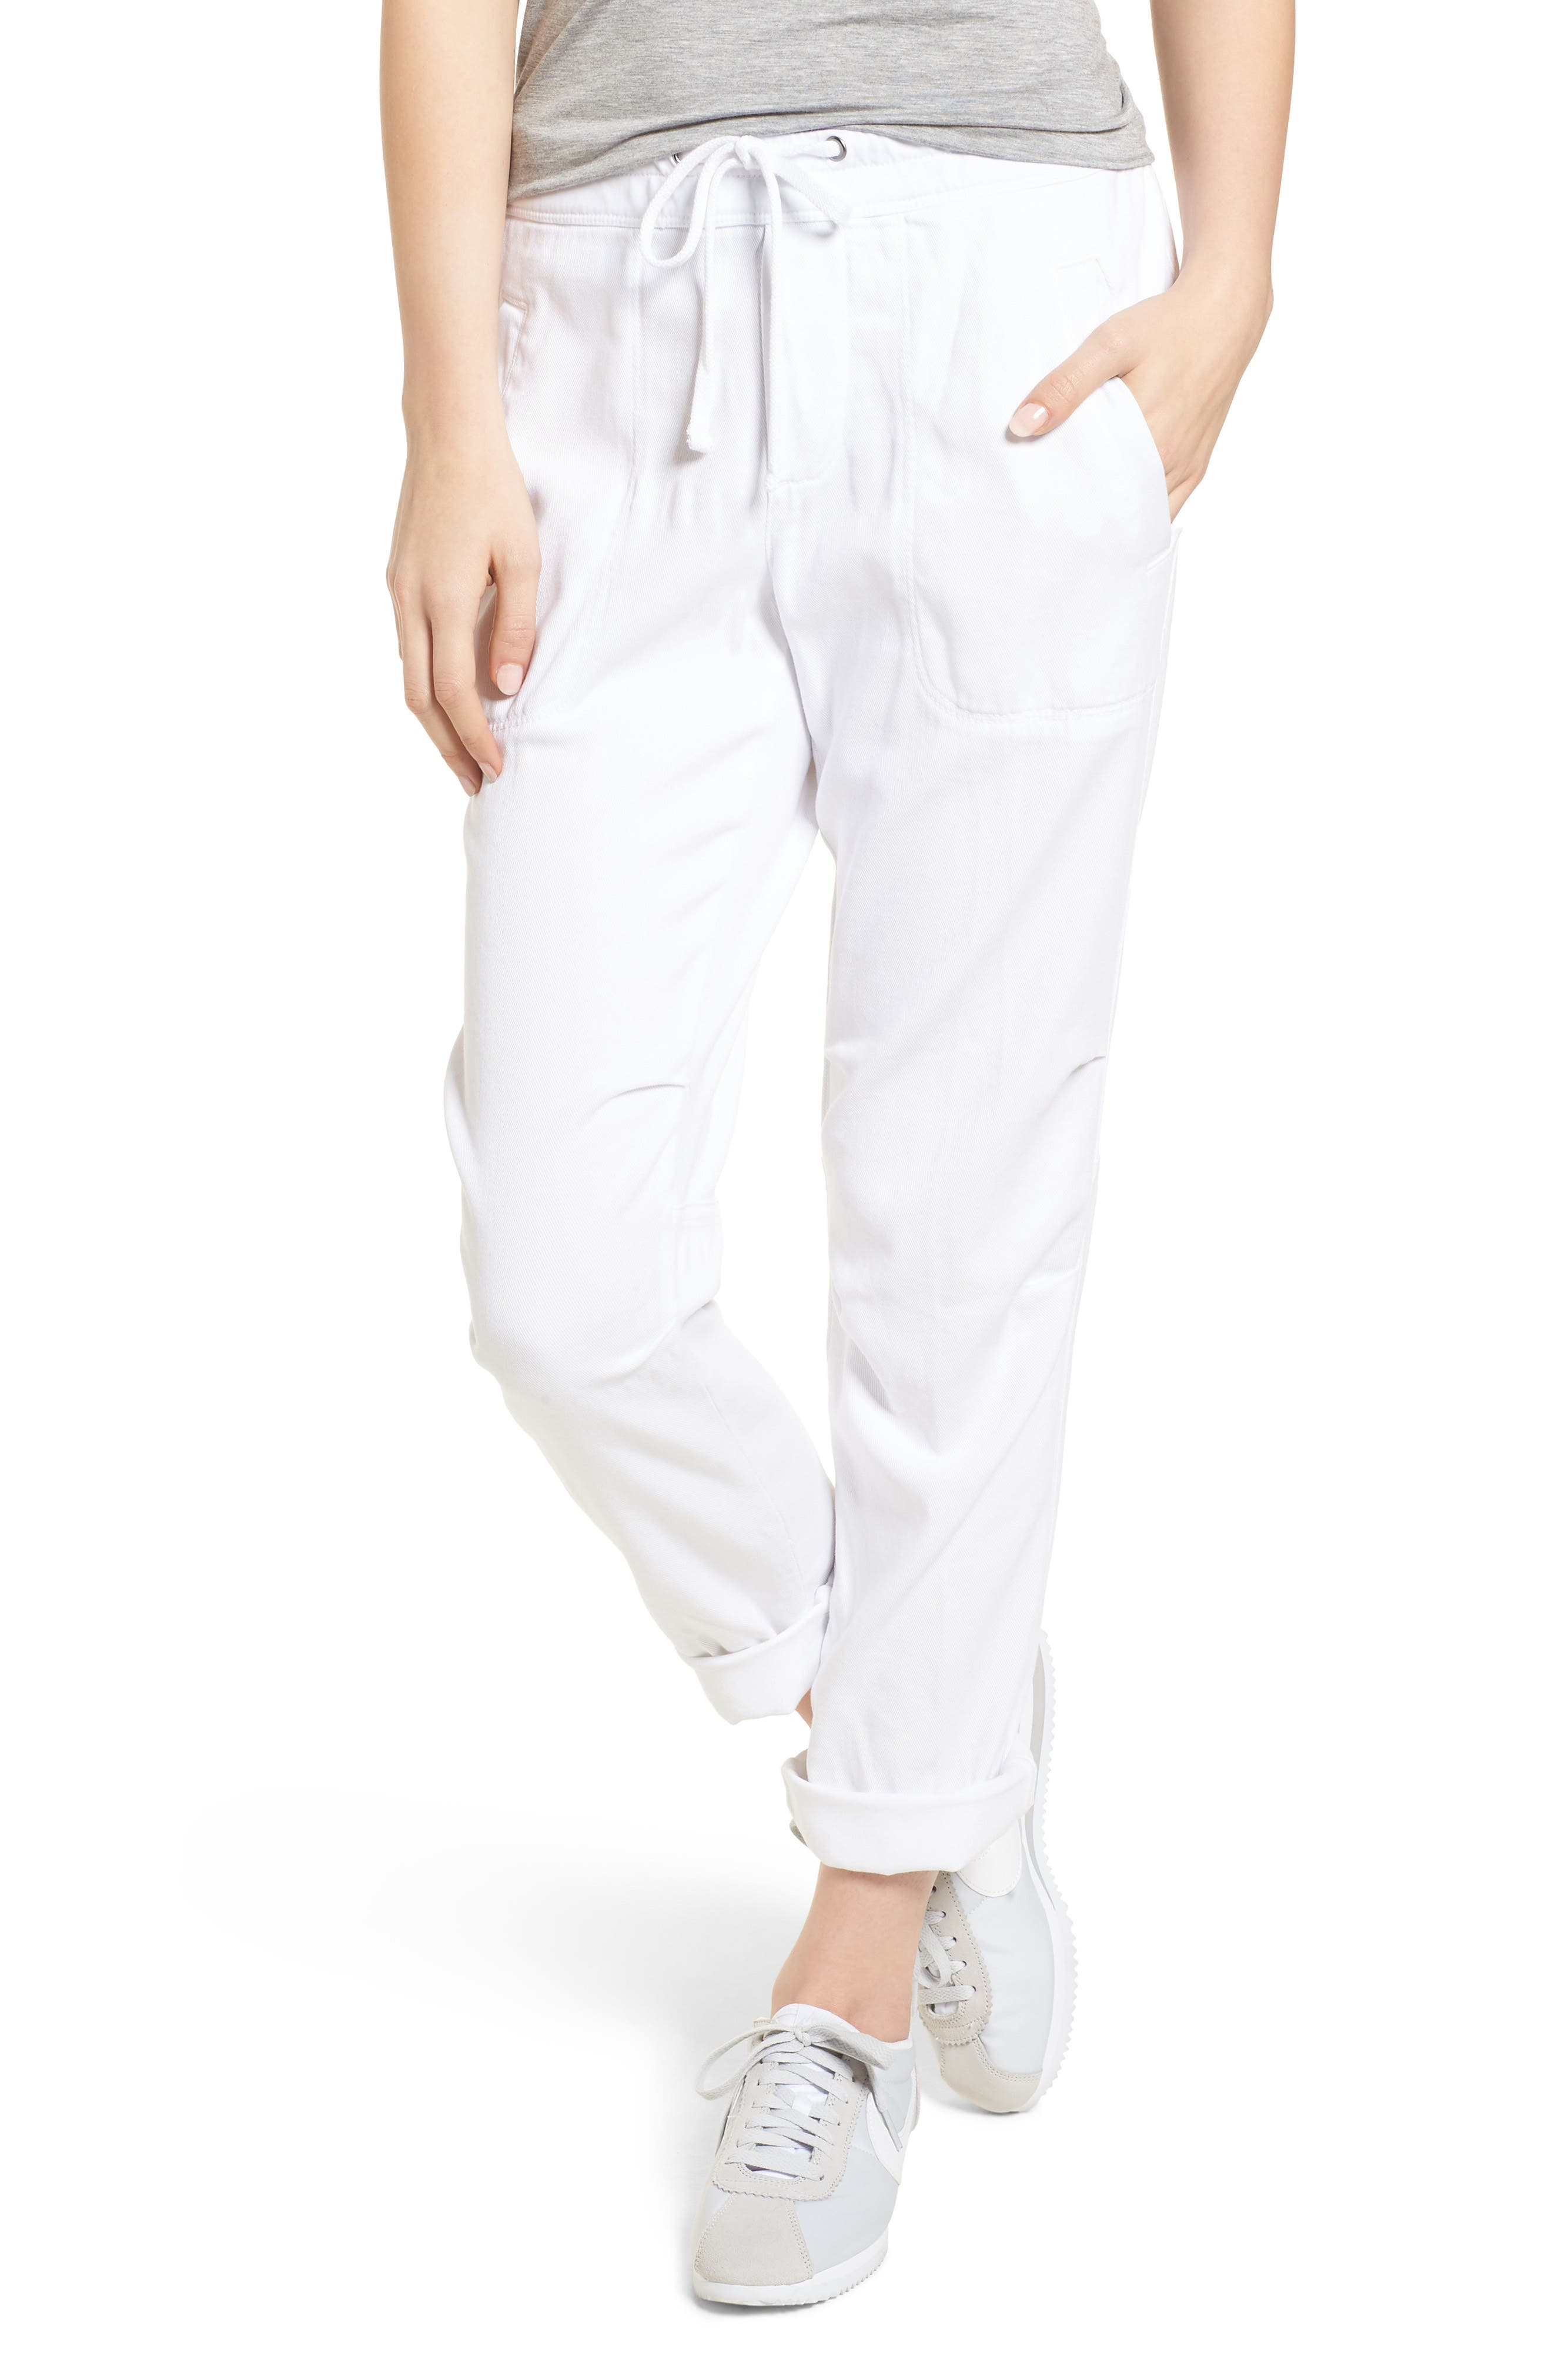 James Perse Utility Pants